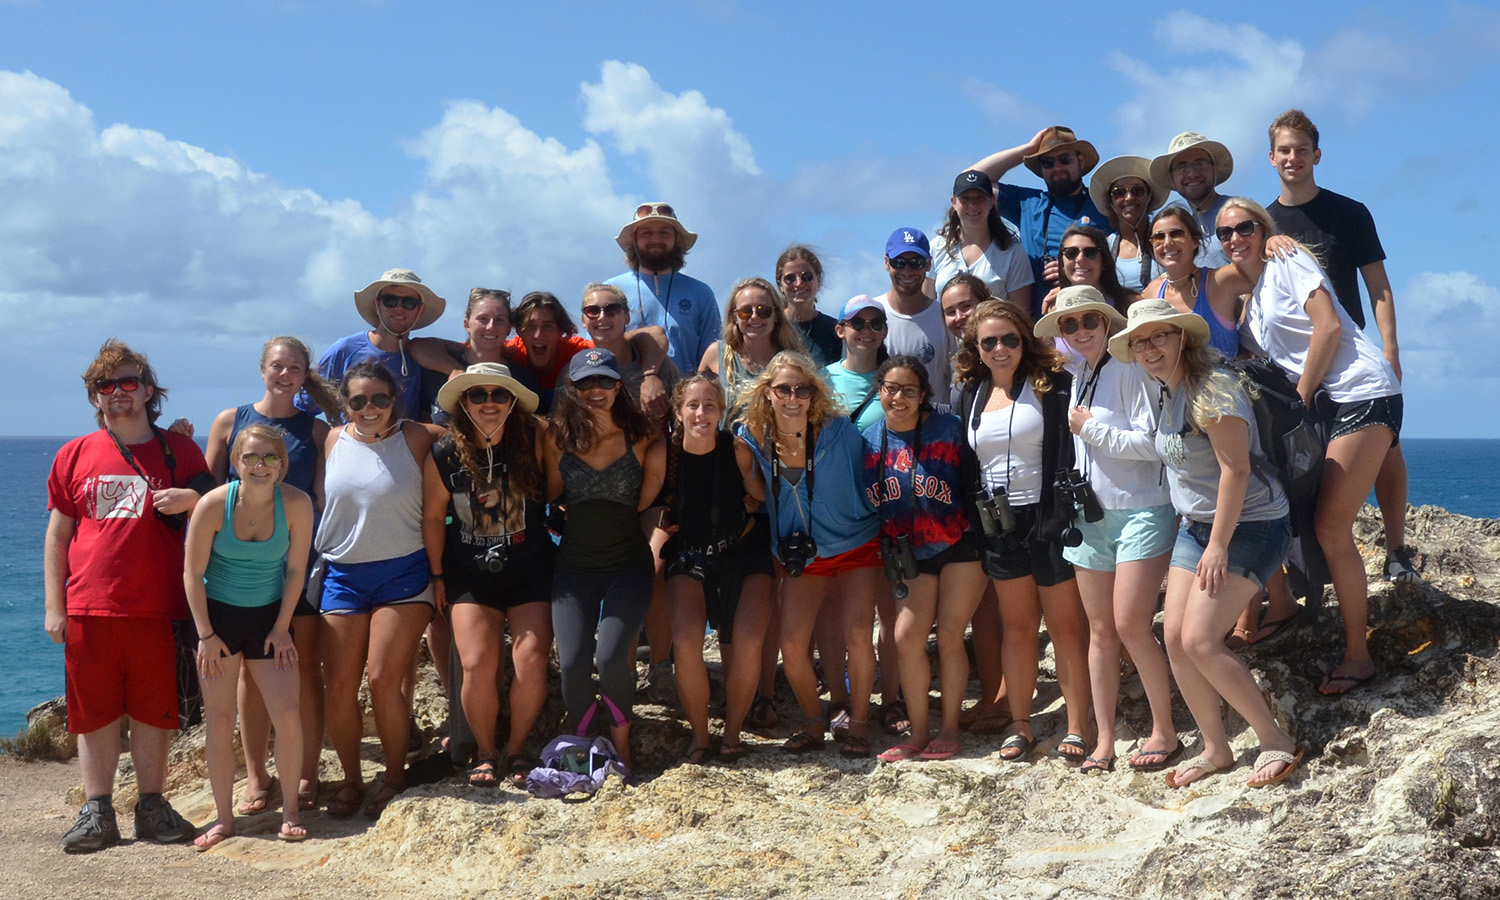 HWS and Union students studying abroad in Brisbane gather for a group photo on the beach.